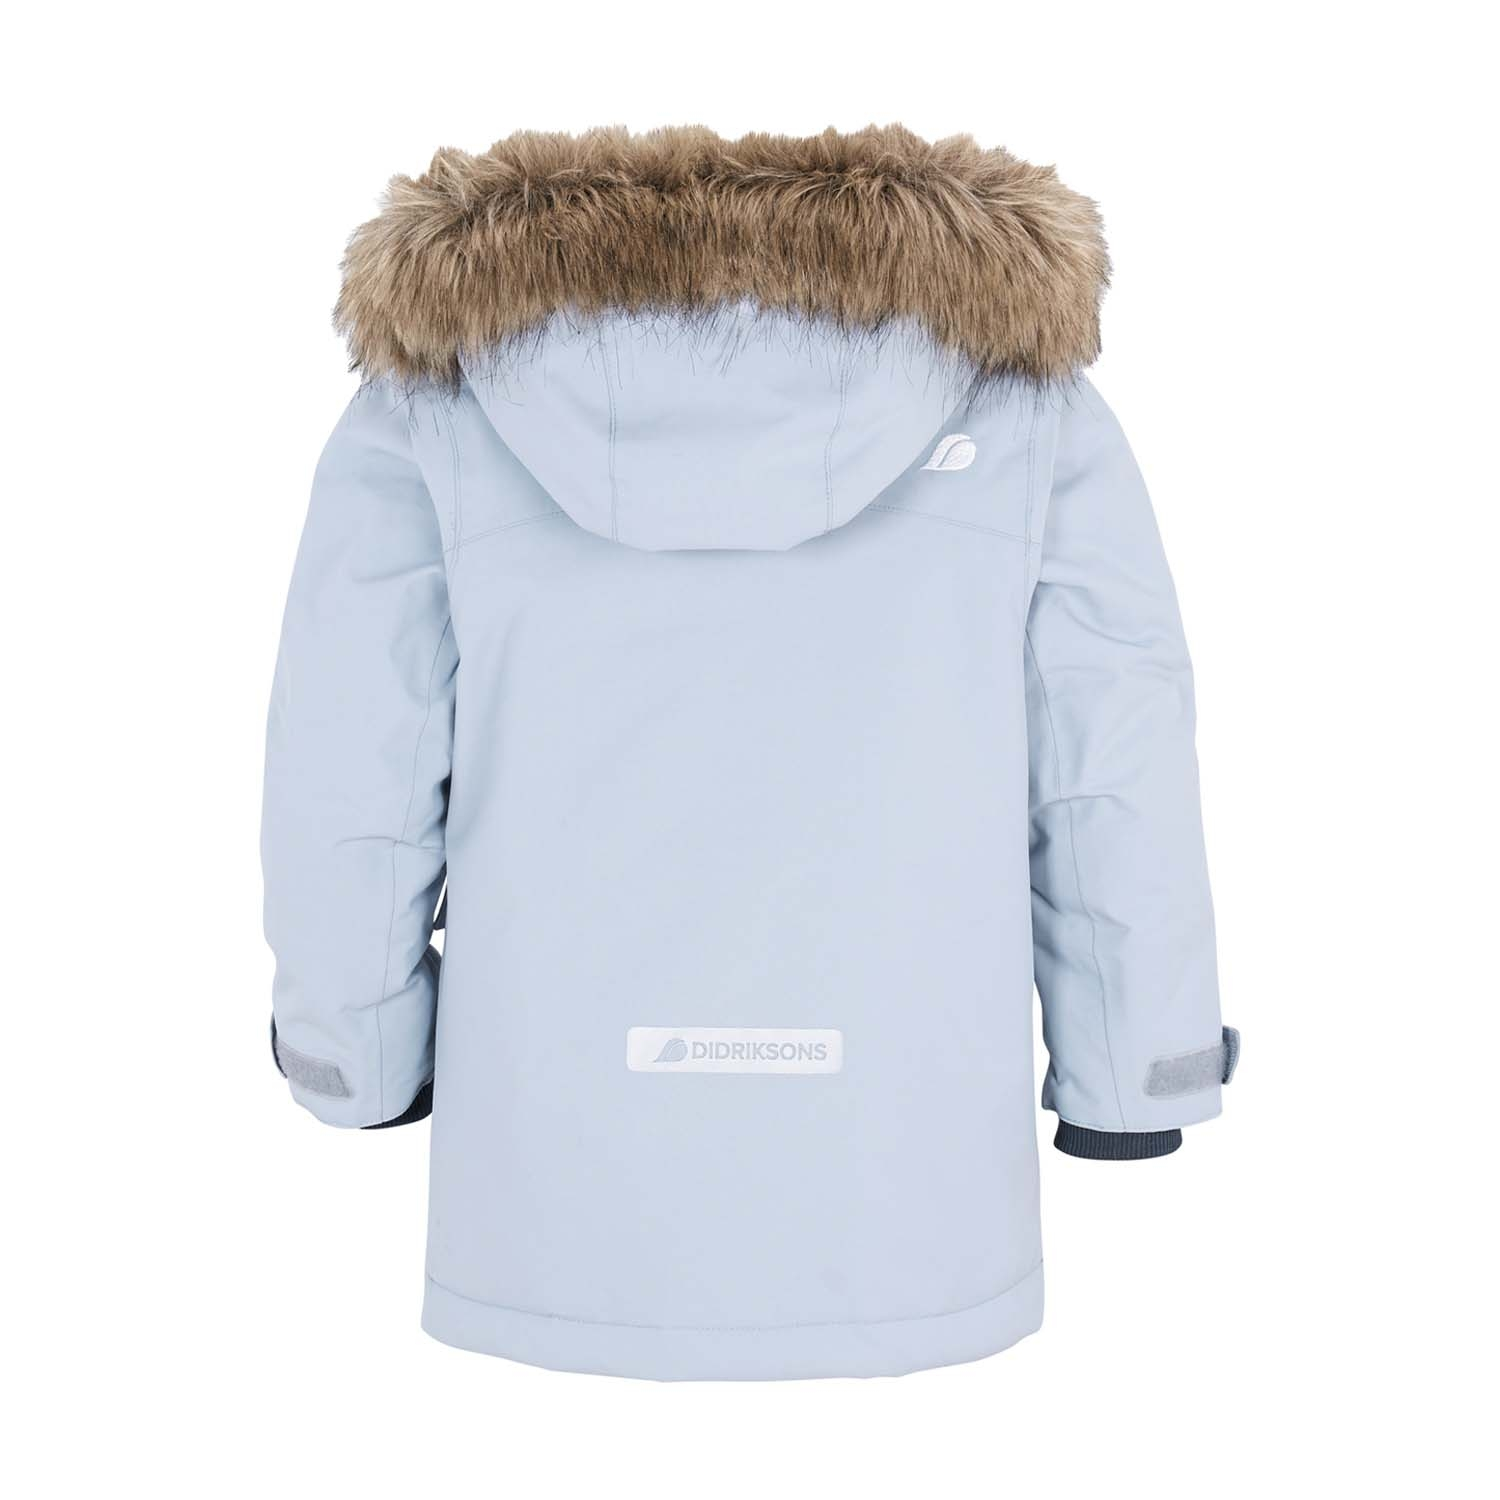 Didriksons Kure Parka Ski Jacket Light Blue 2021